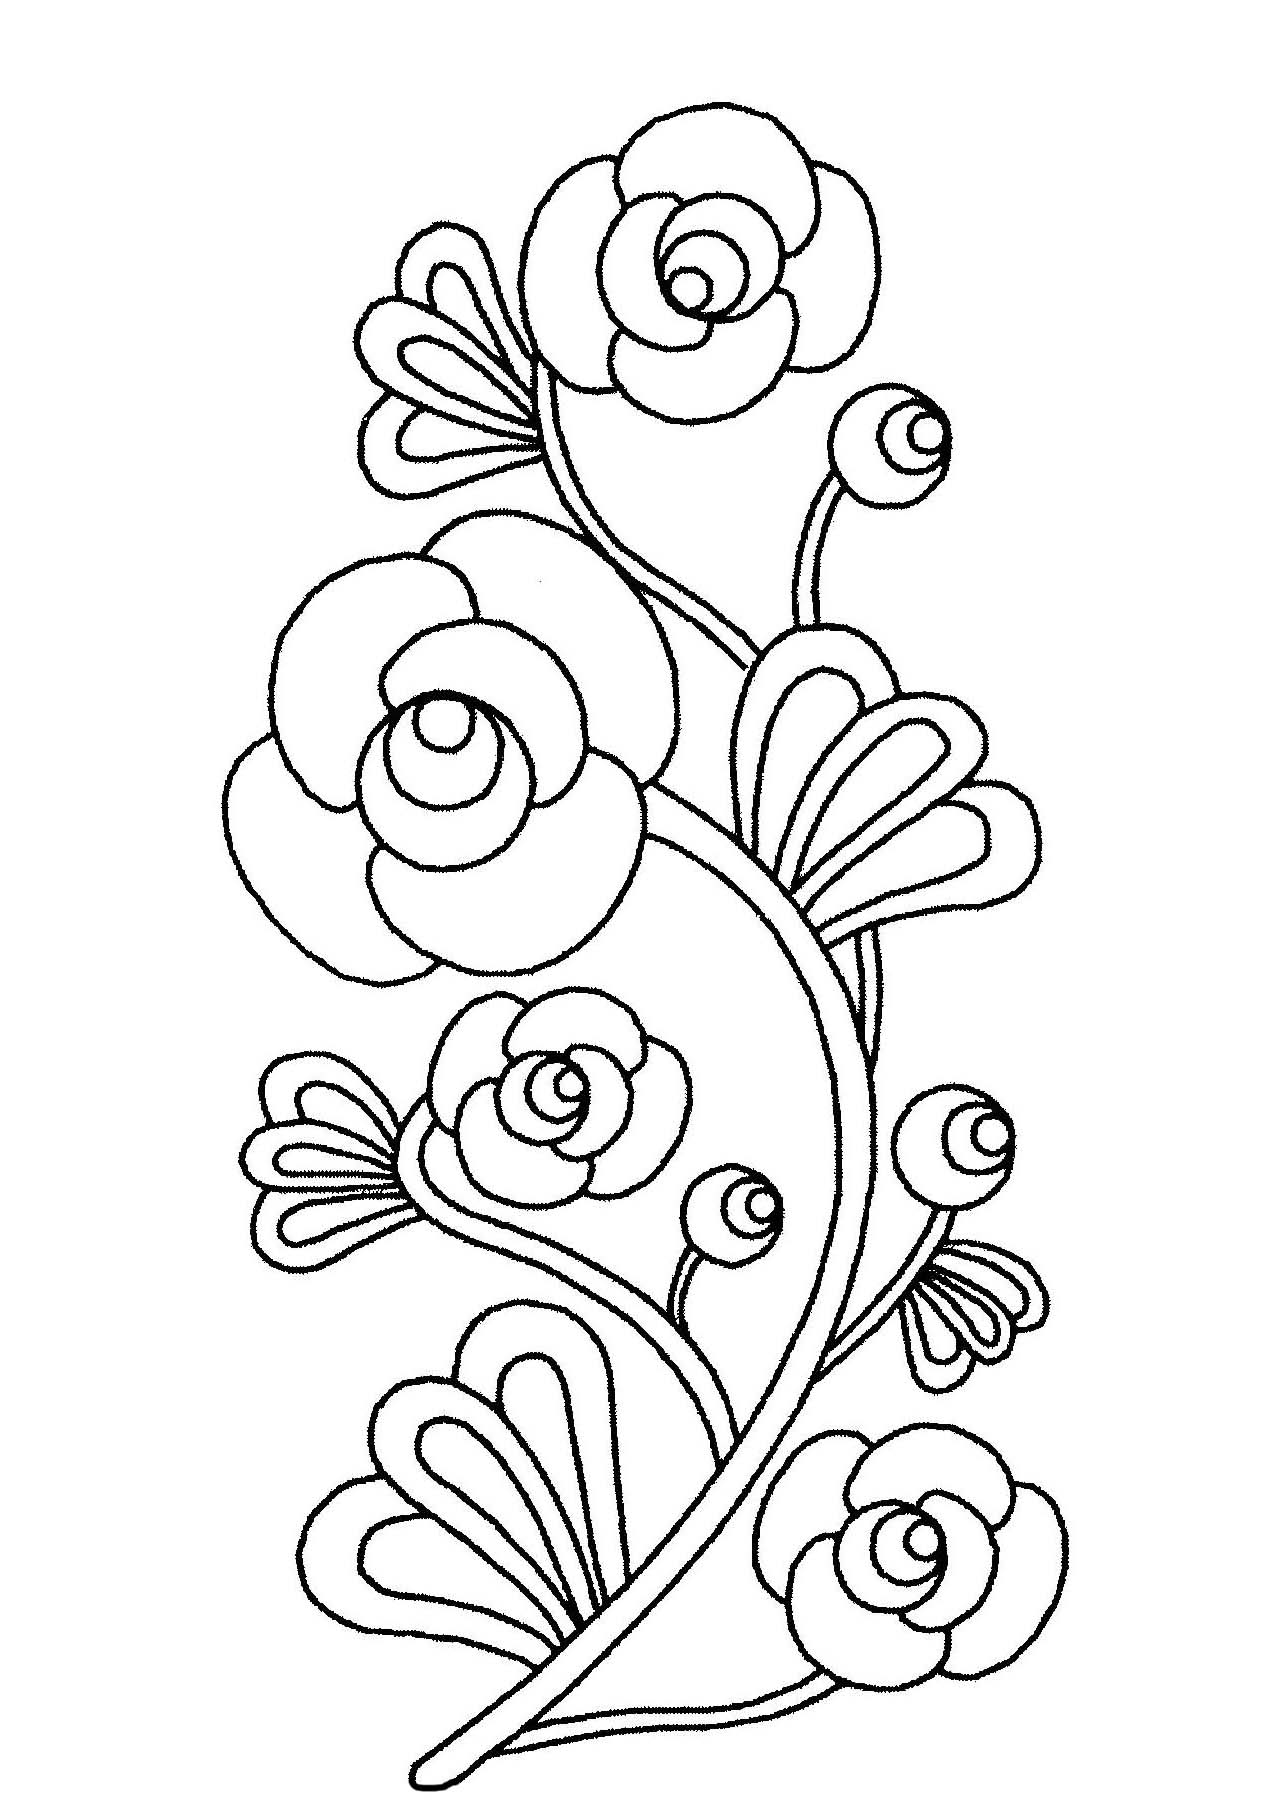 colouring pictures of flowers free printable flower coloring pages for kids best of flowers colouring pictures